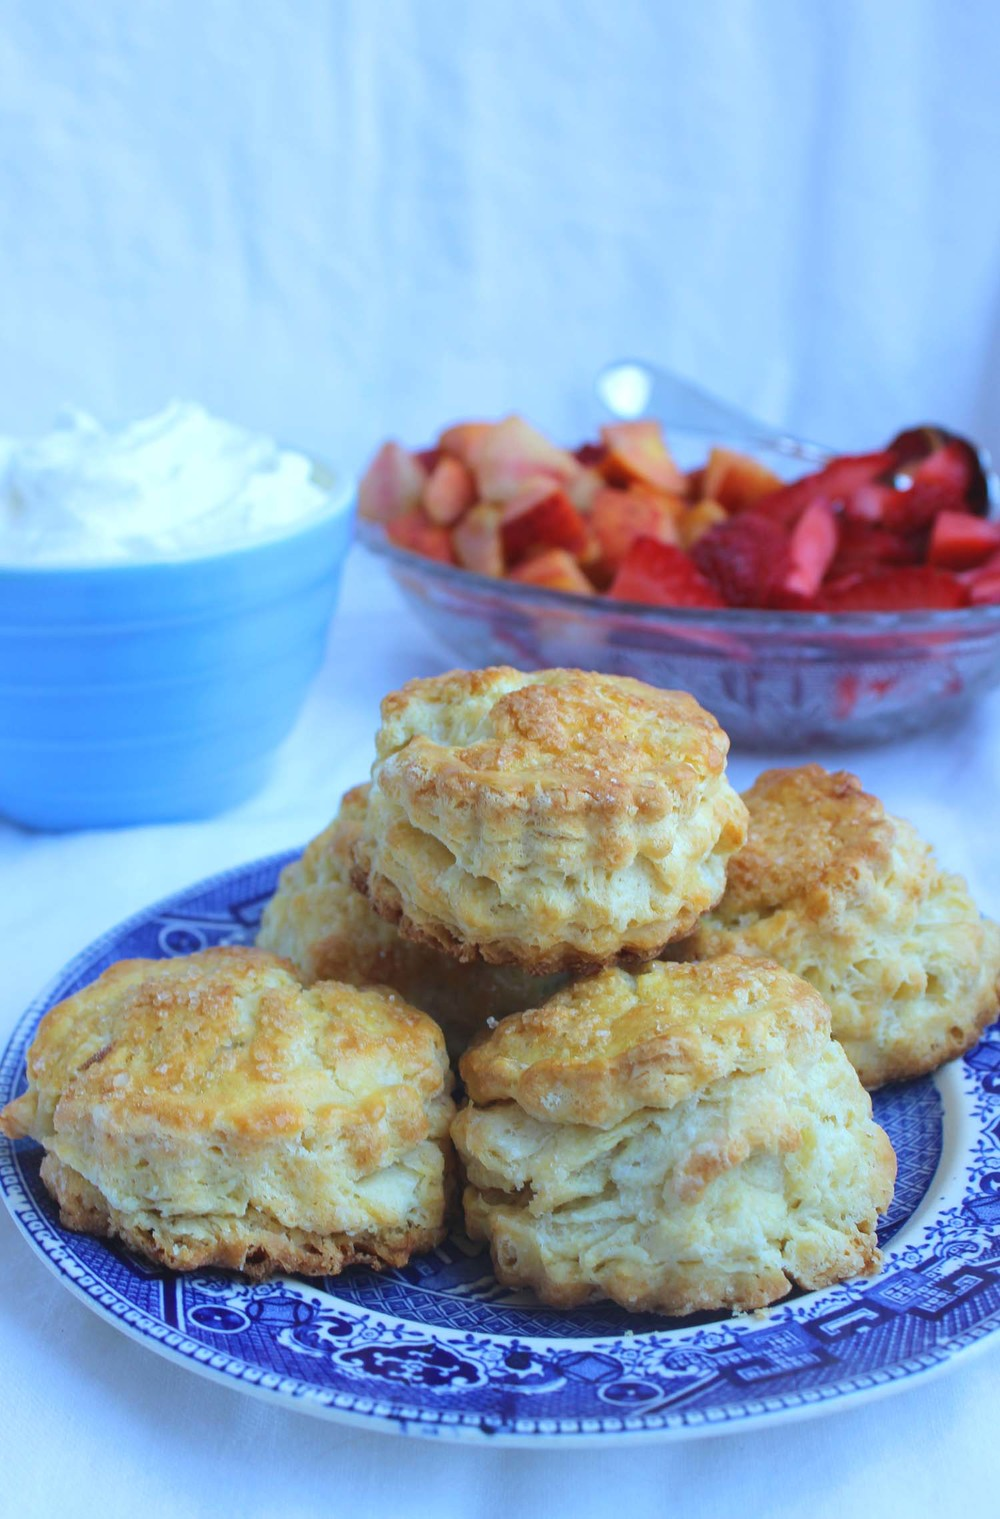 Peach Strawberry Shortcakes   | Image:   Laura Messersmith